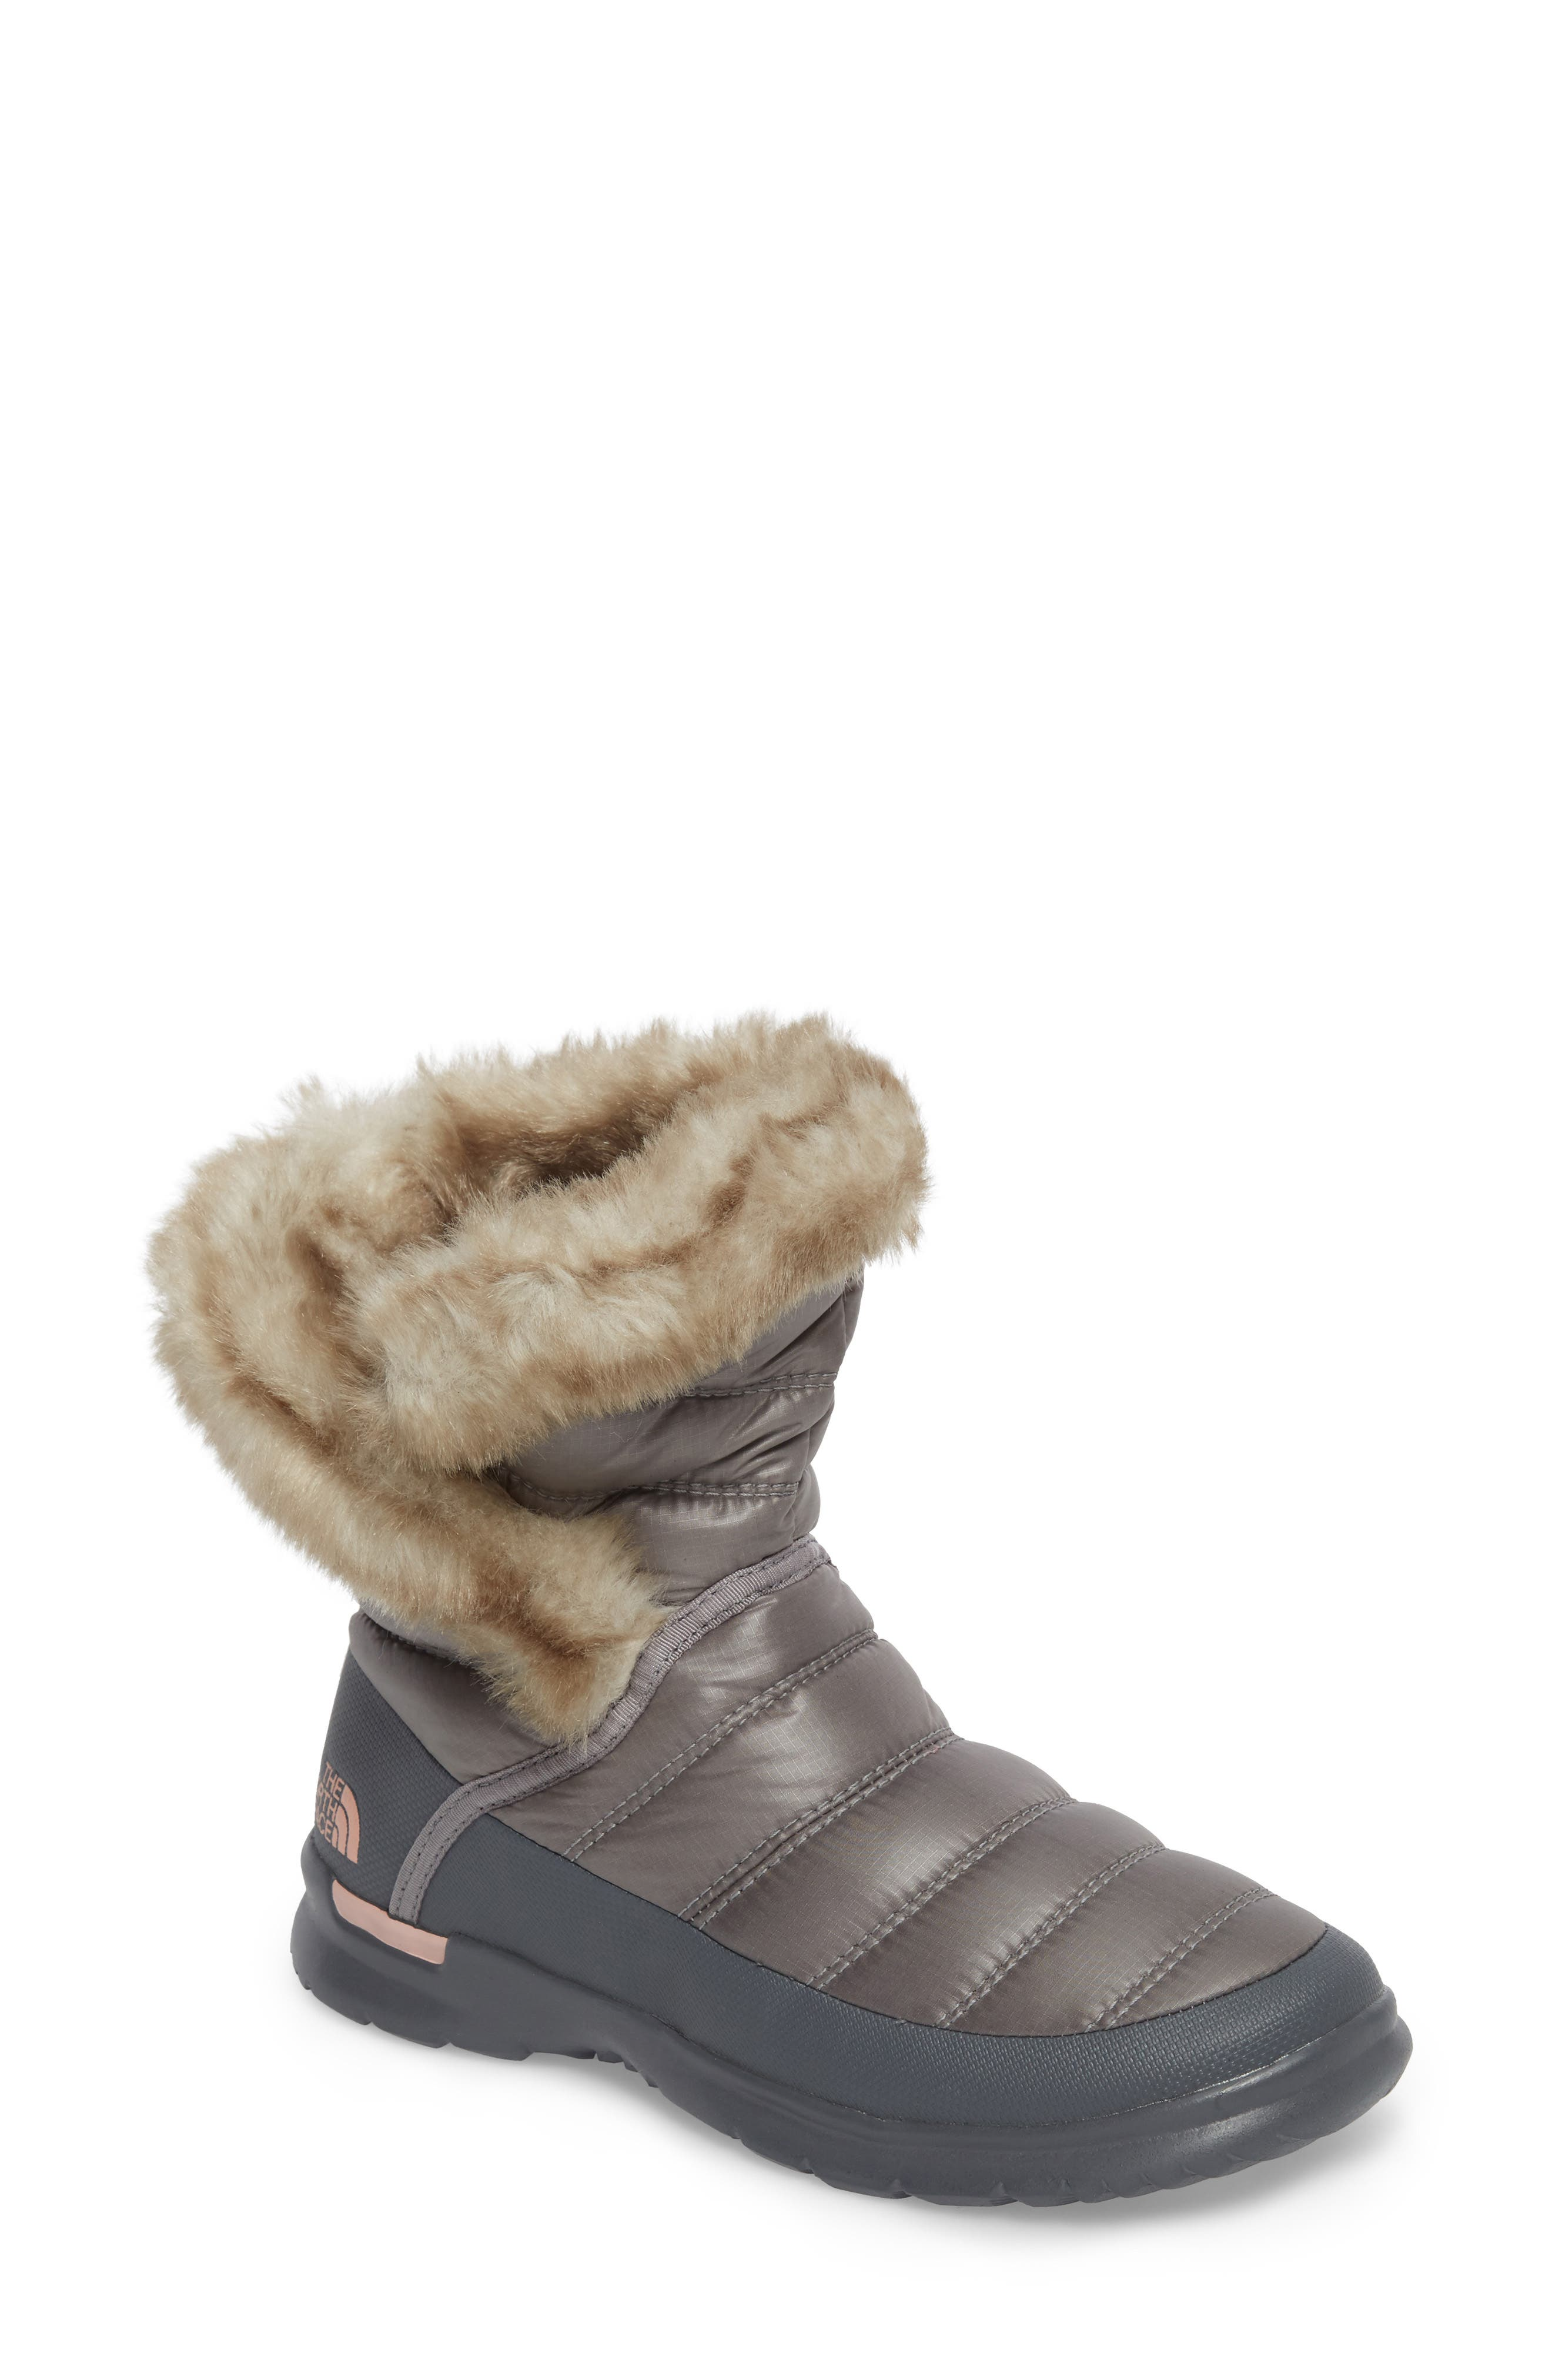 THE NORTH FACE Microbaffle Waterproof ThermoBall<sup>™</sup> Insulated Winter Boot, Main, color, 021